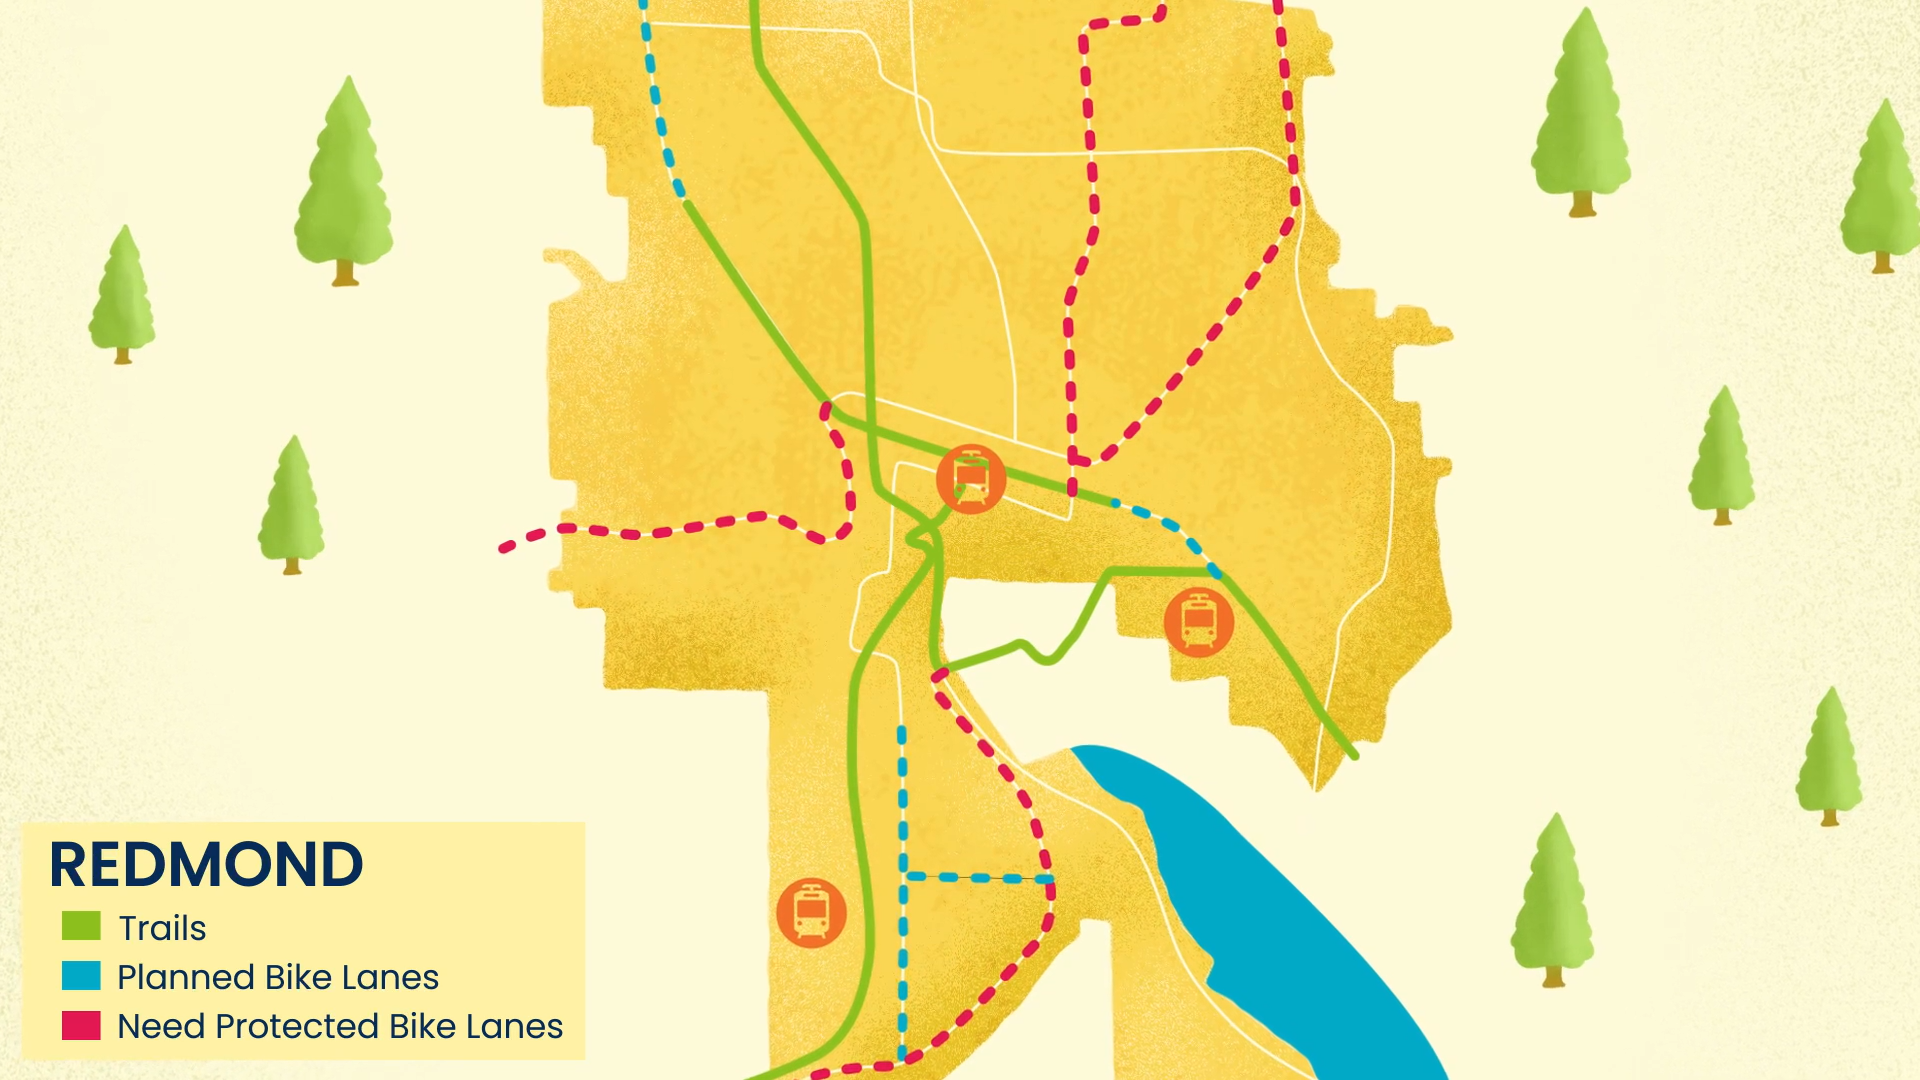 Illustrated Map of Redmond with trails in Green, Future Protected Bike Lanes in Blue and Move Redmond's Proposed Bike Lanes in Red on Bel-Red Road, Old Redmond Road, Avondale and 166th